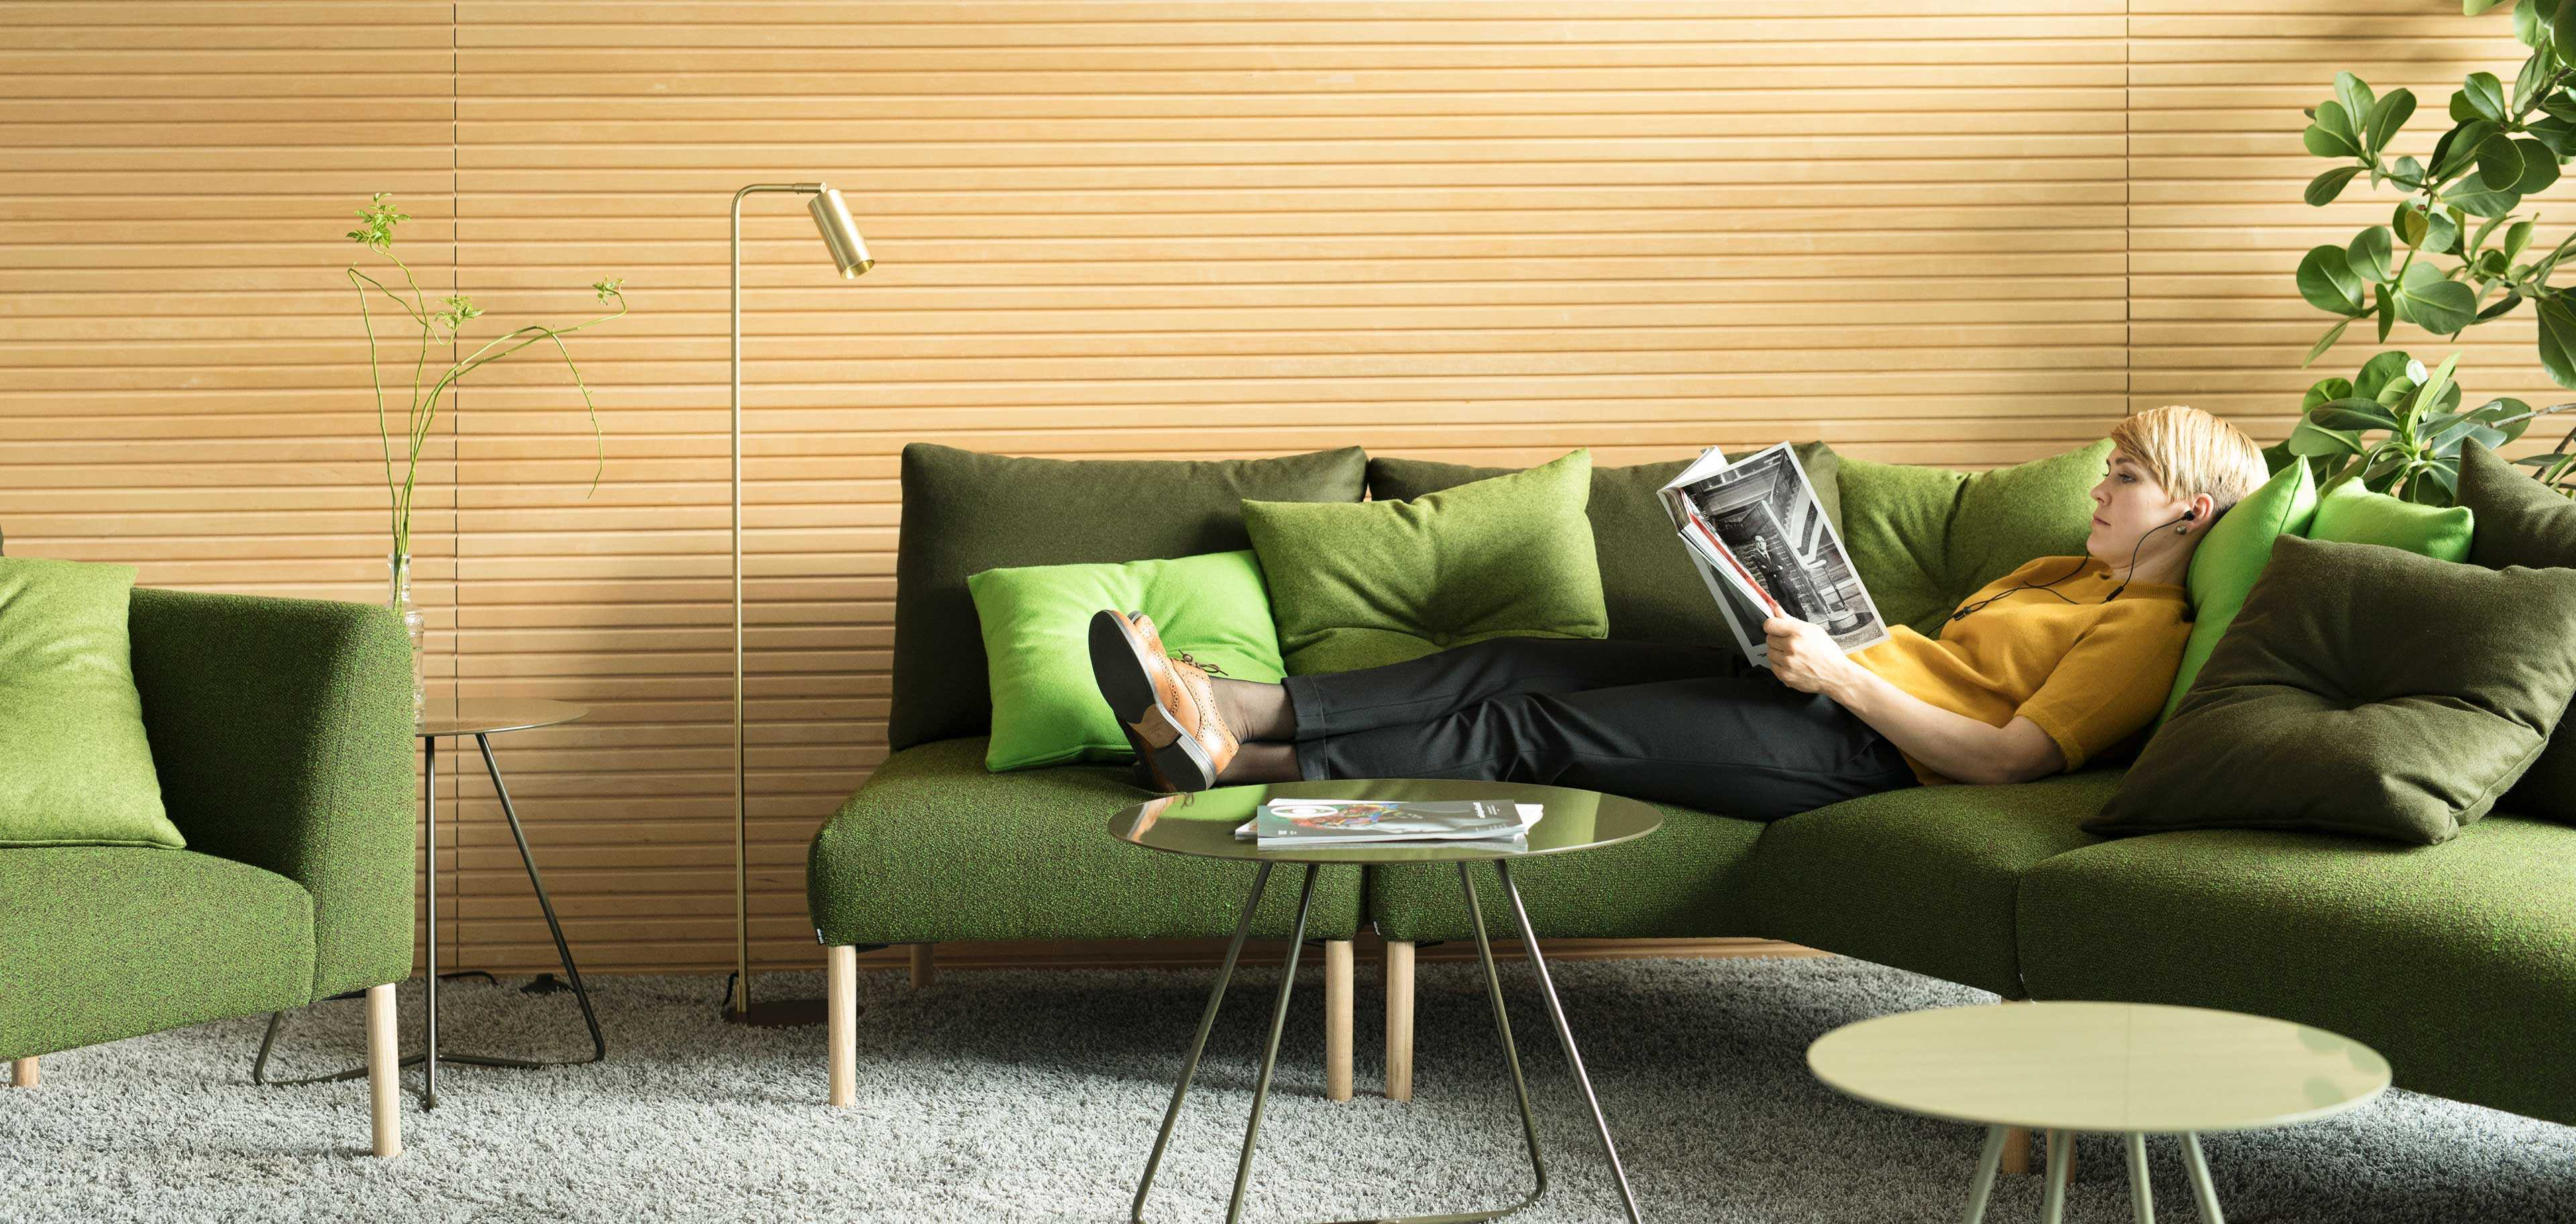 A woman relaxing on a green sofa